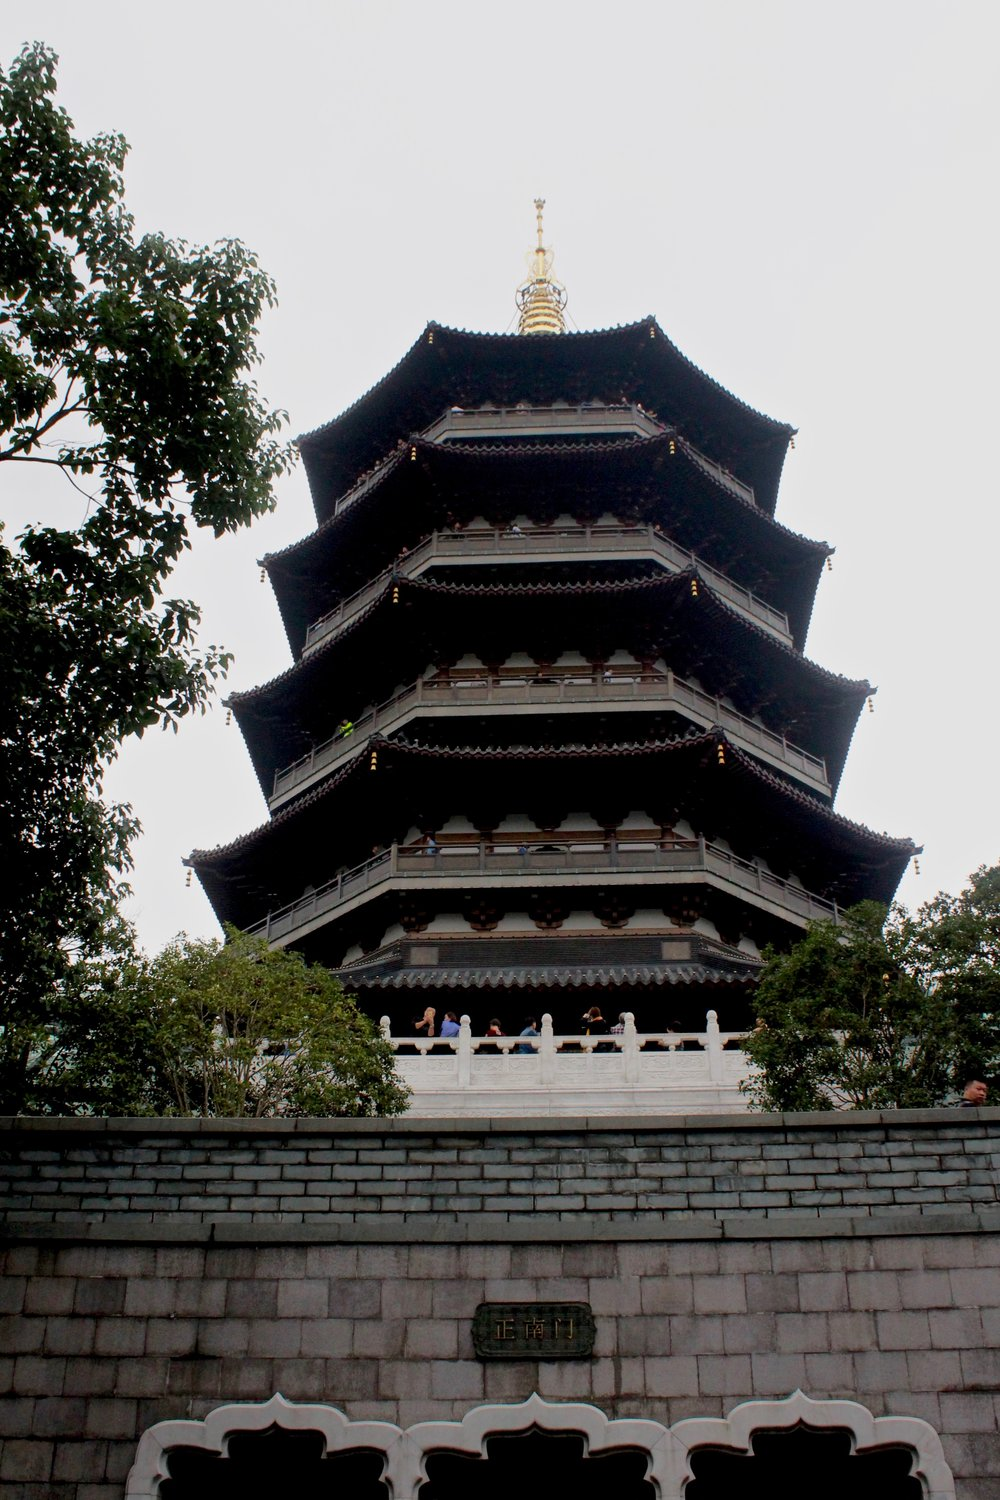 The Leifeng Pagoda